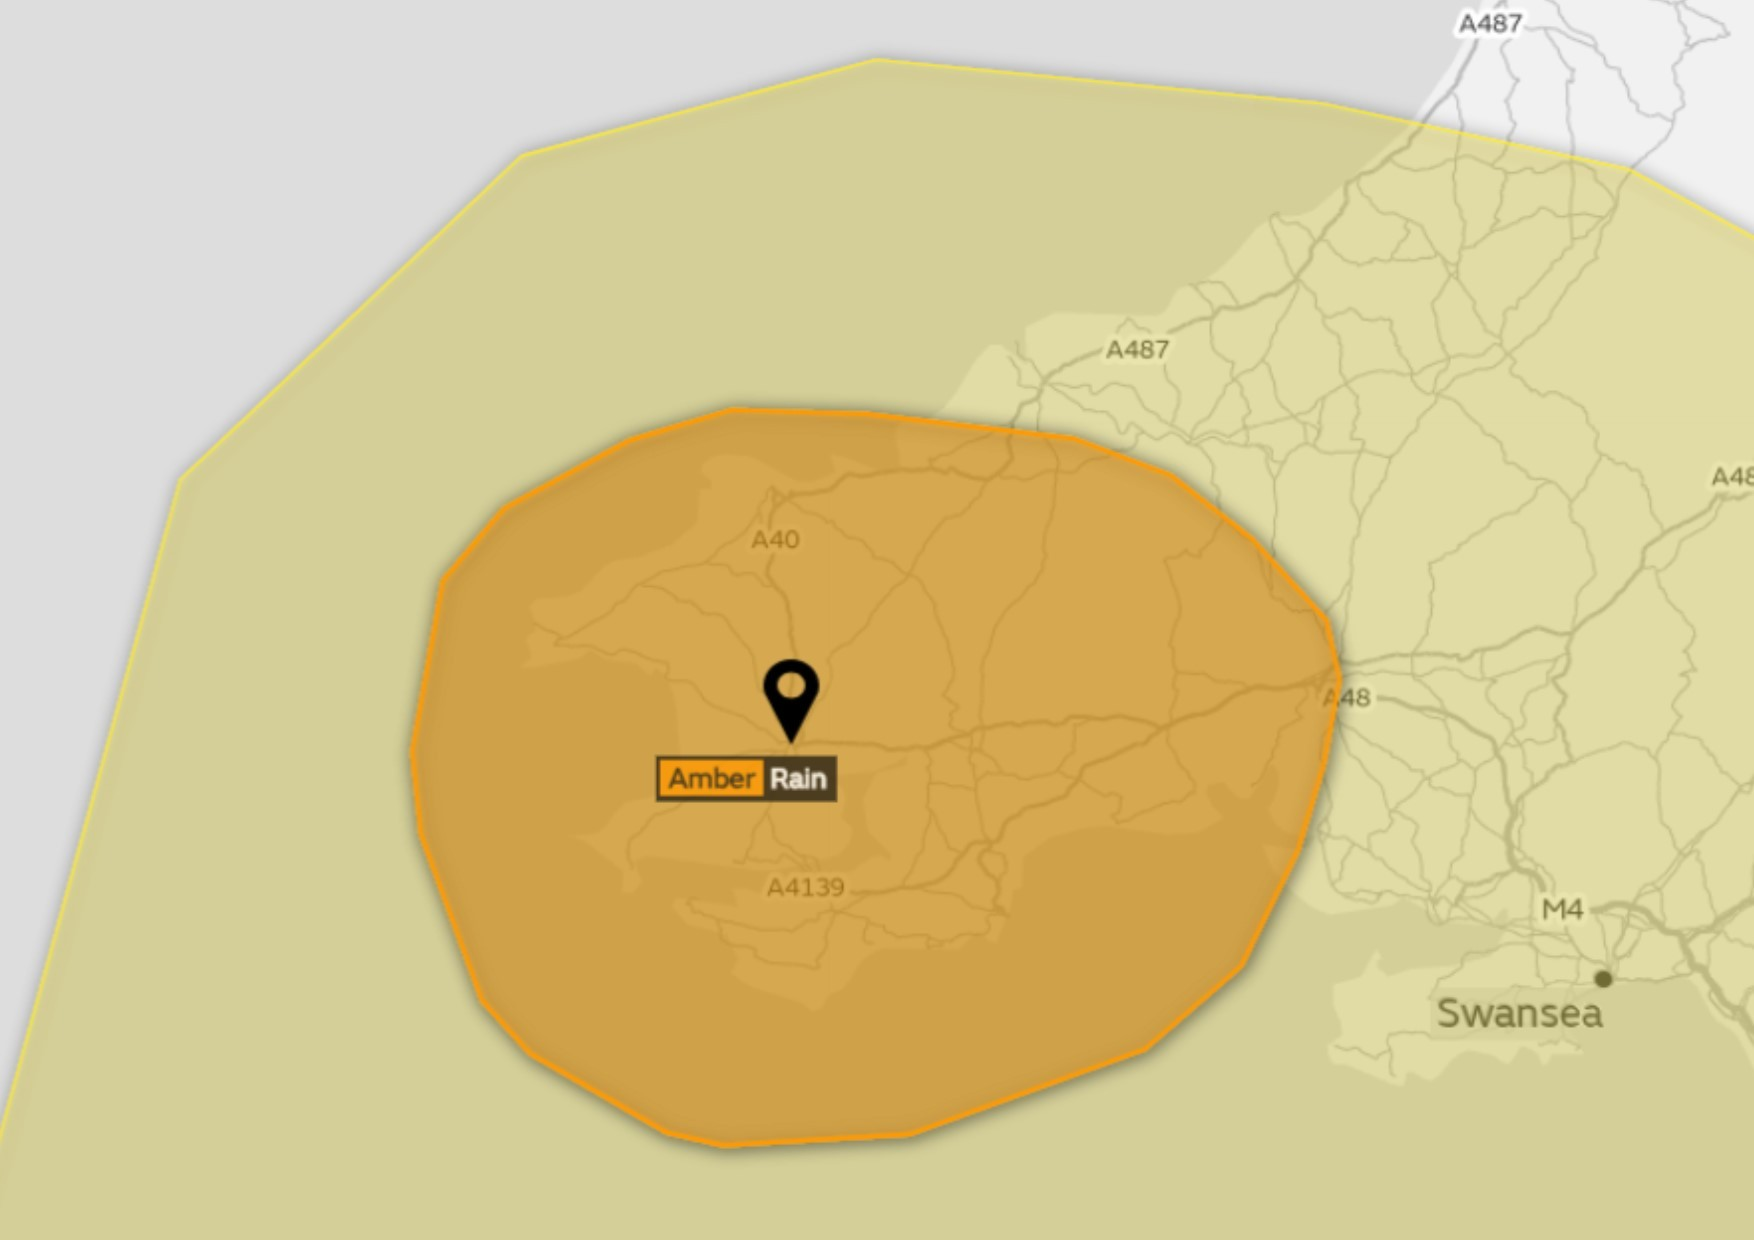 There is an amber weather warning in place for this afternoon. PICTURE: Met Office.